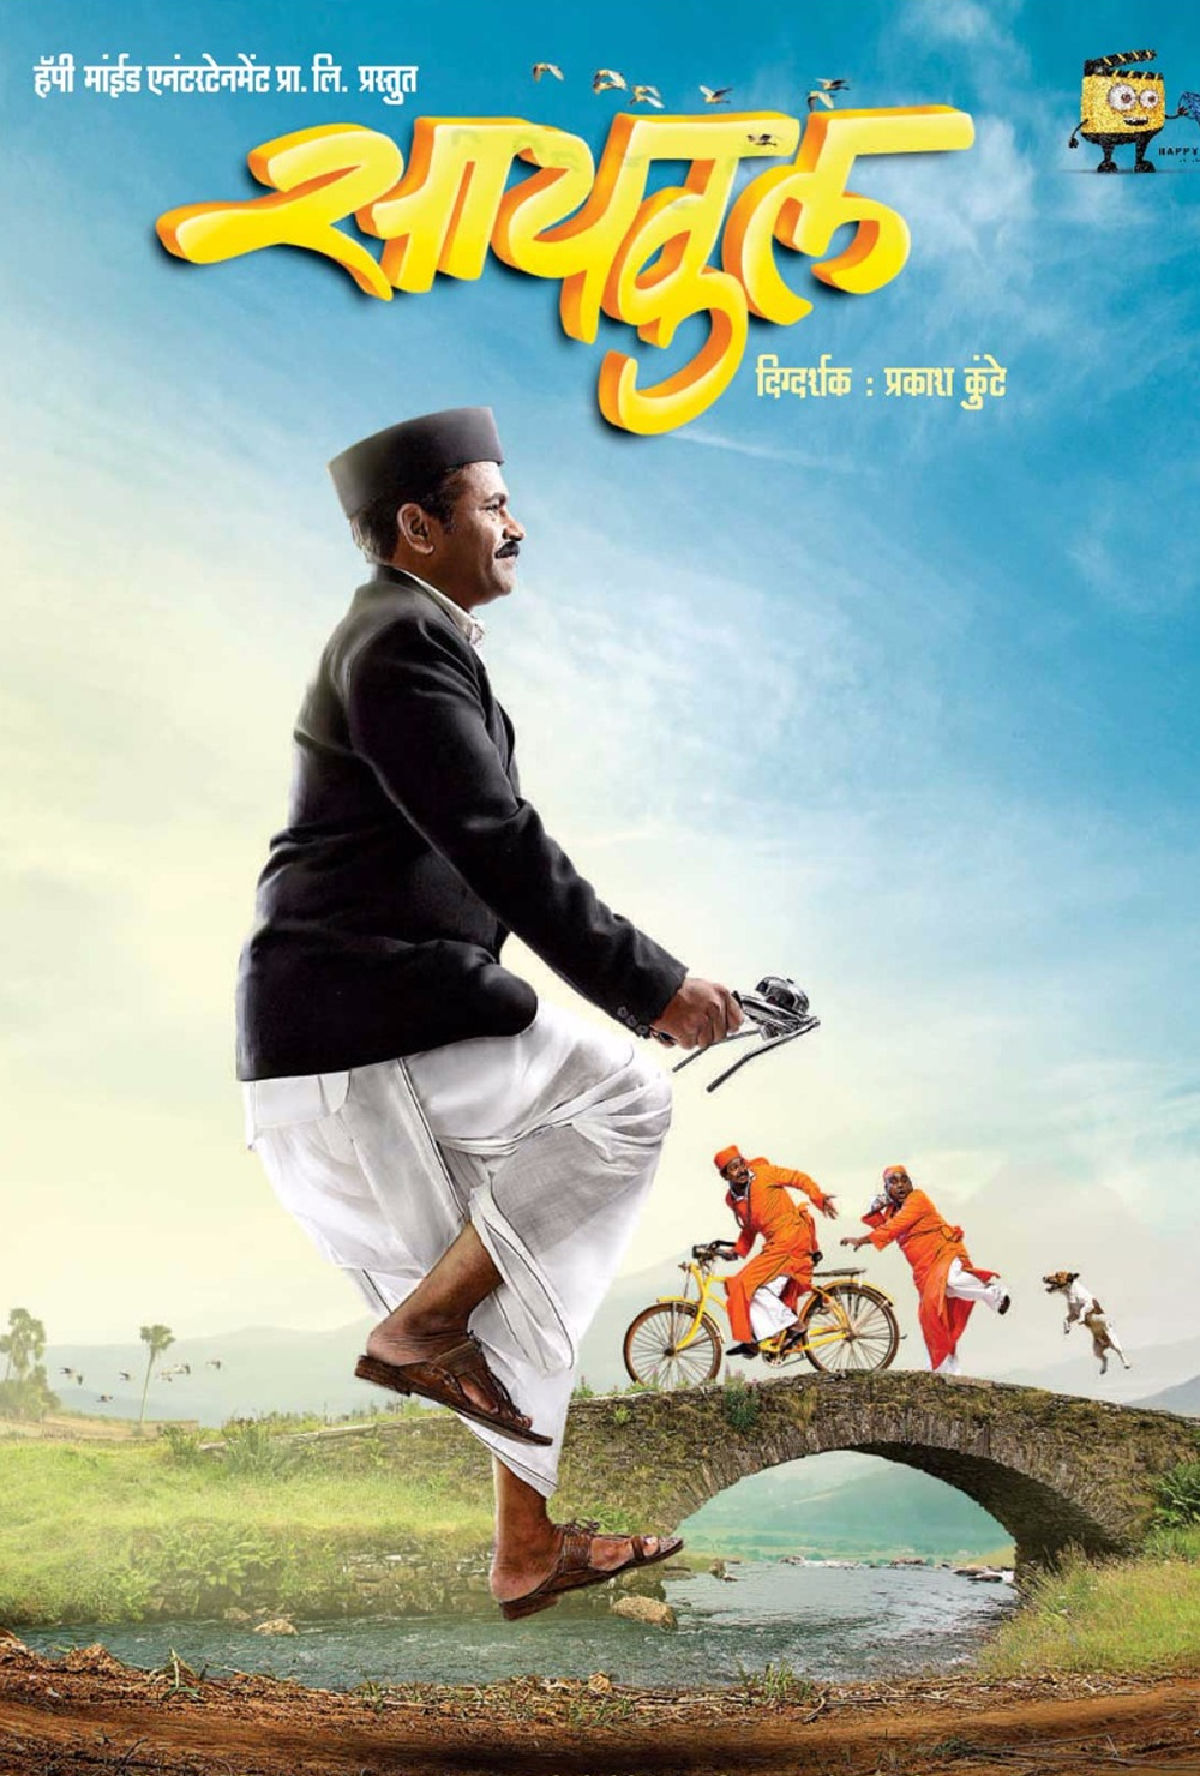 'Cycle' movie poster